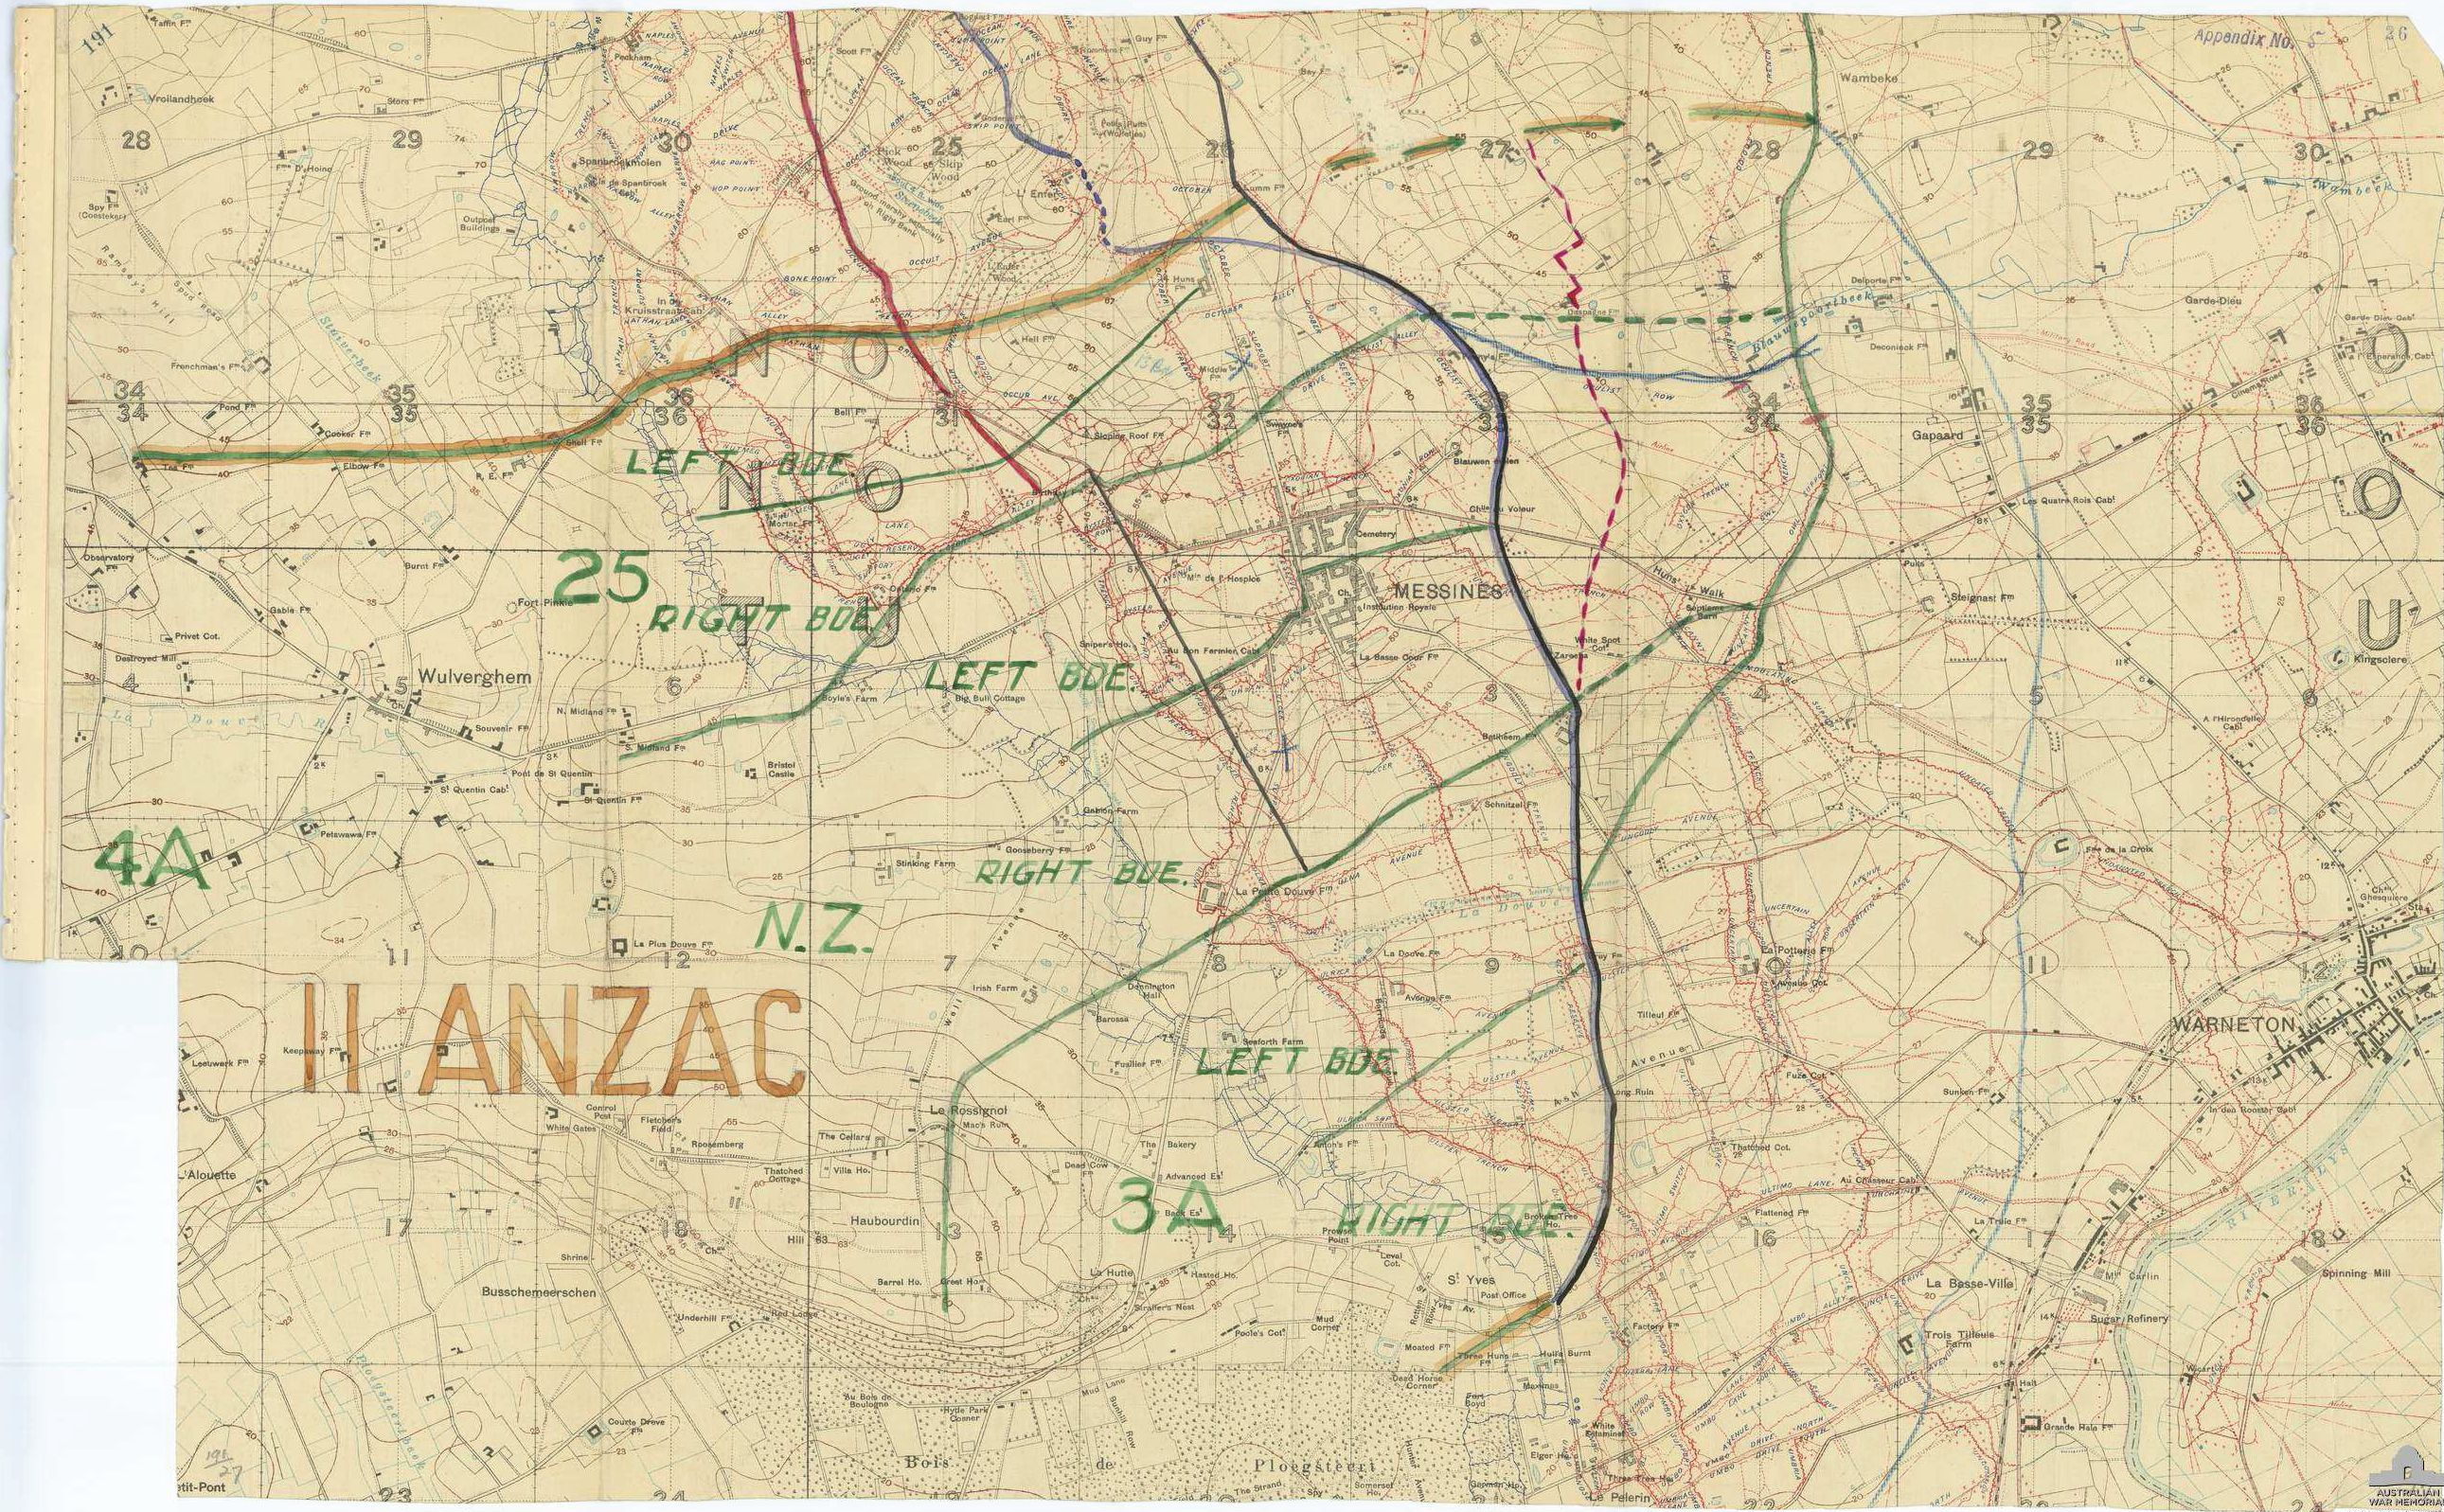 File:Battle of Messines - II ANZAC Corps attack plan down to brigade ...